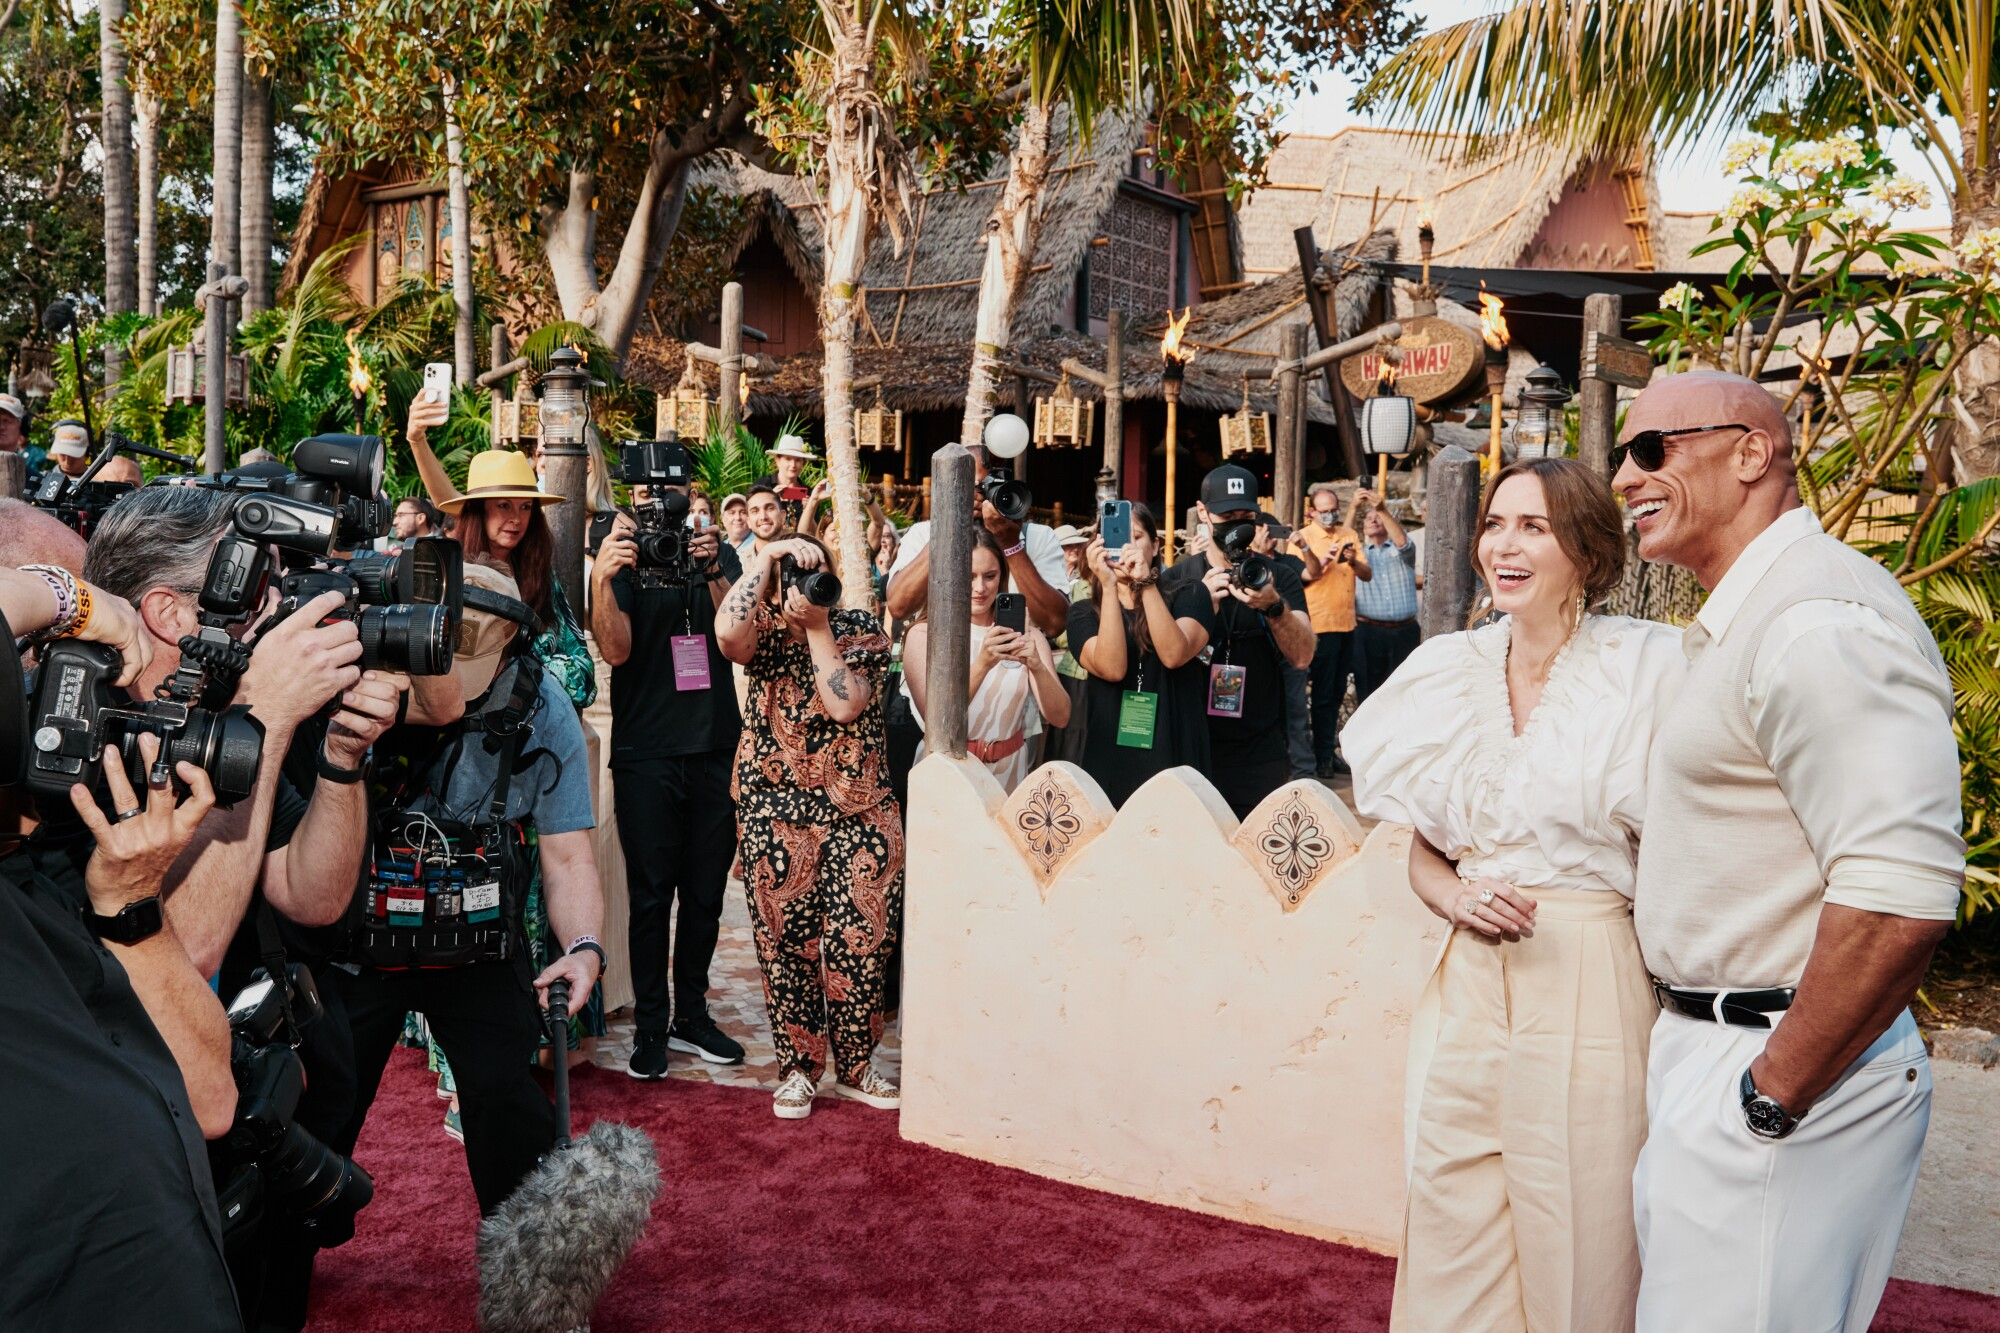 Emily Blunt and Dwayne Johnson exit the Jungle Cruise ride and stand for photographers on the red carpet.